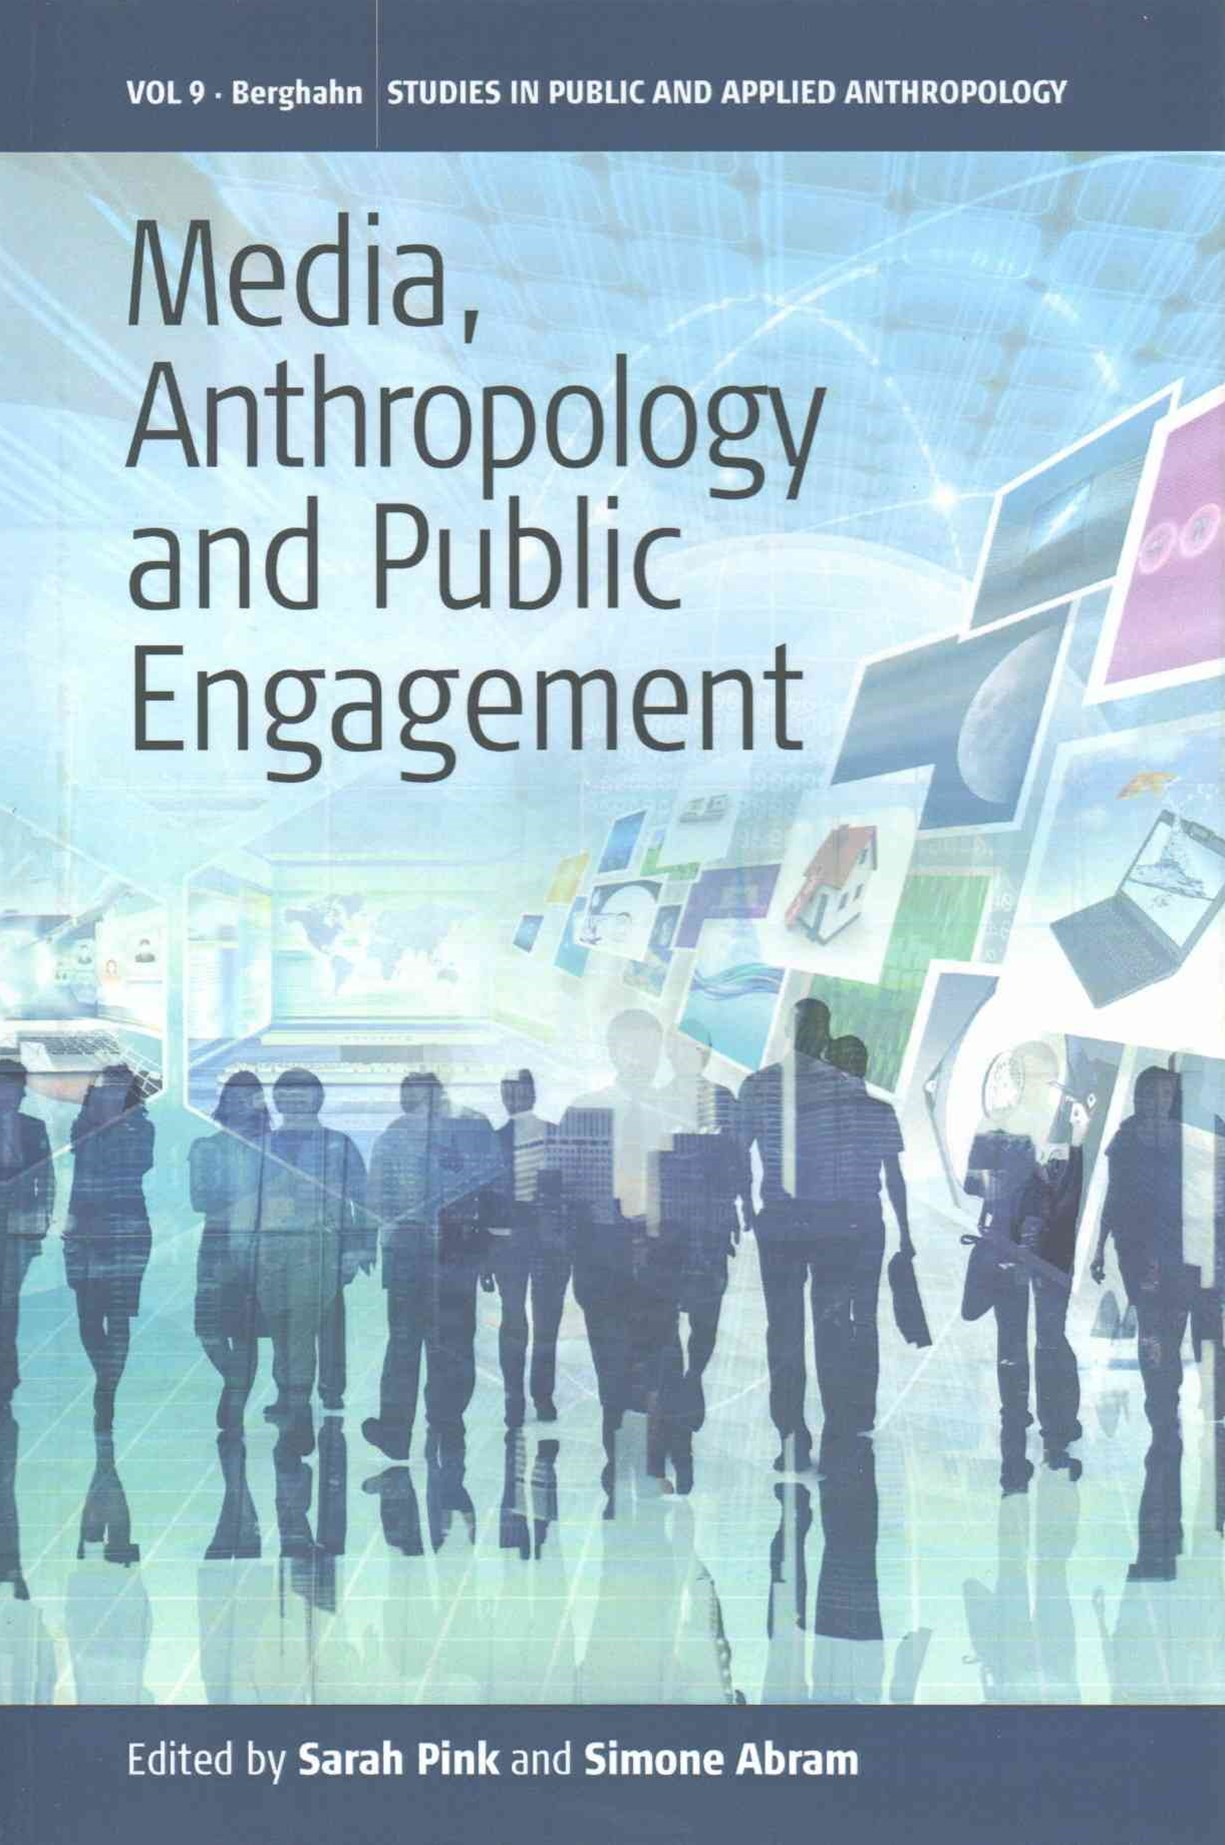 Media, Anthropology and Public Engagement